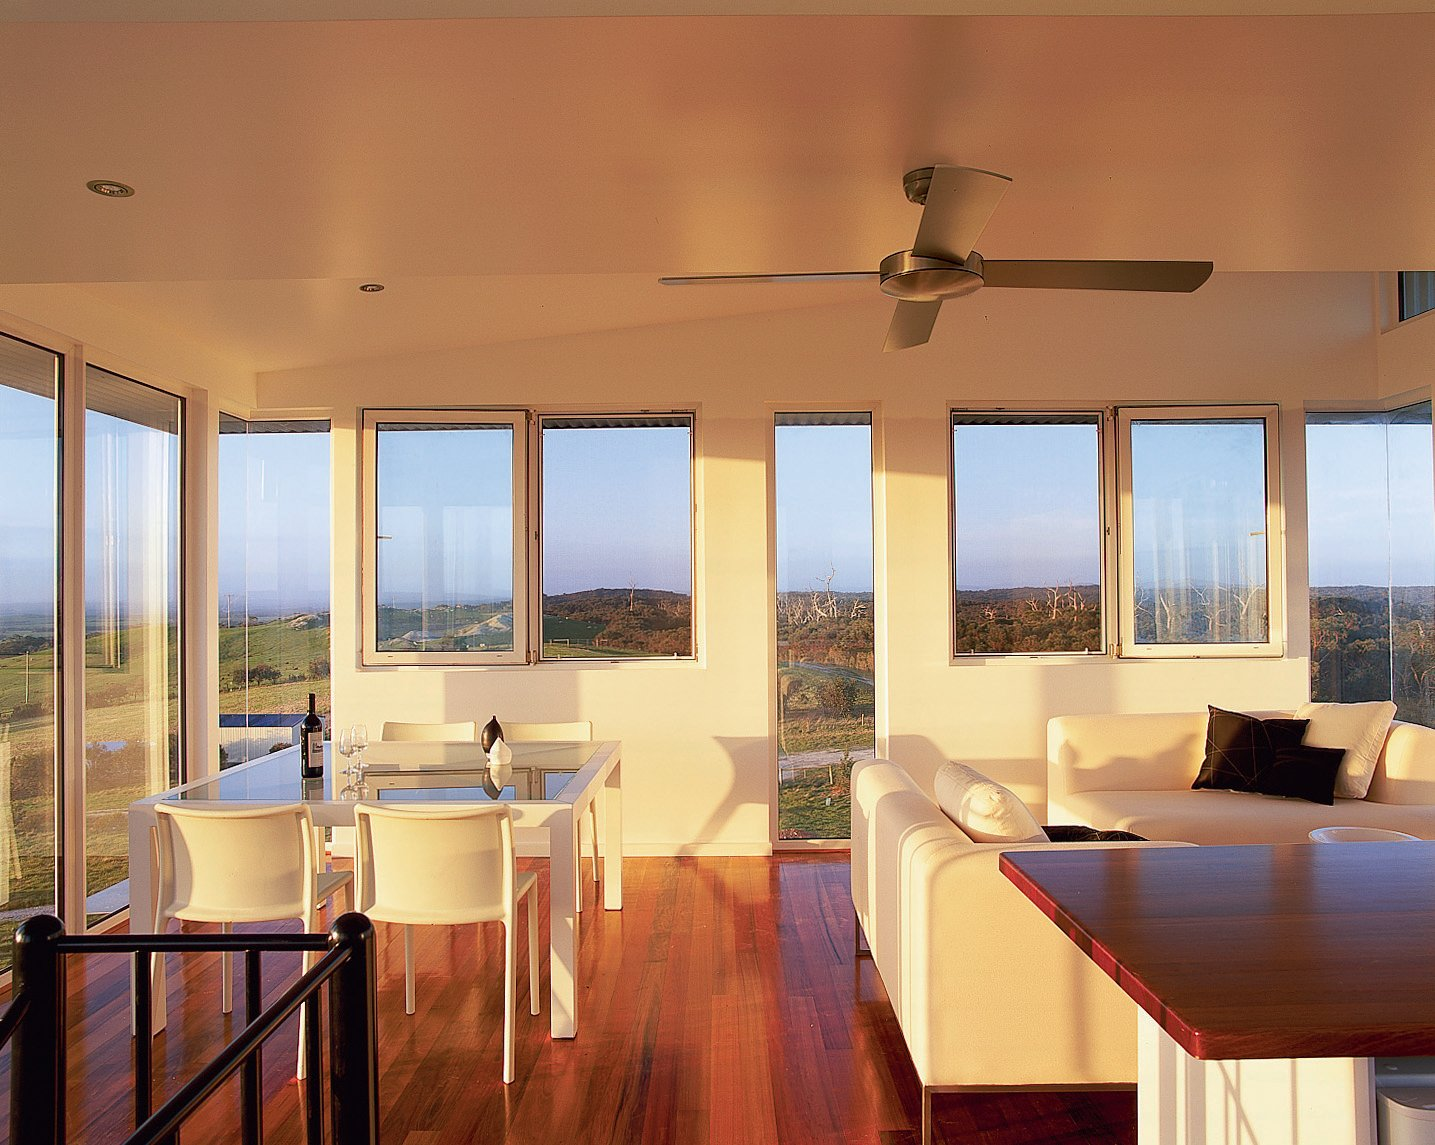 Living Room, Sectional, and Medium Hardwood Floor Walls of windows in the kitchen and living area frame uninterrupted views of a forest and the ocean.  Photo 3 of 3 in Rising to the Occasion